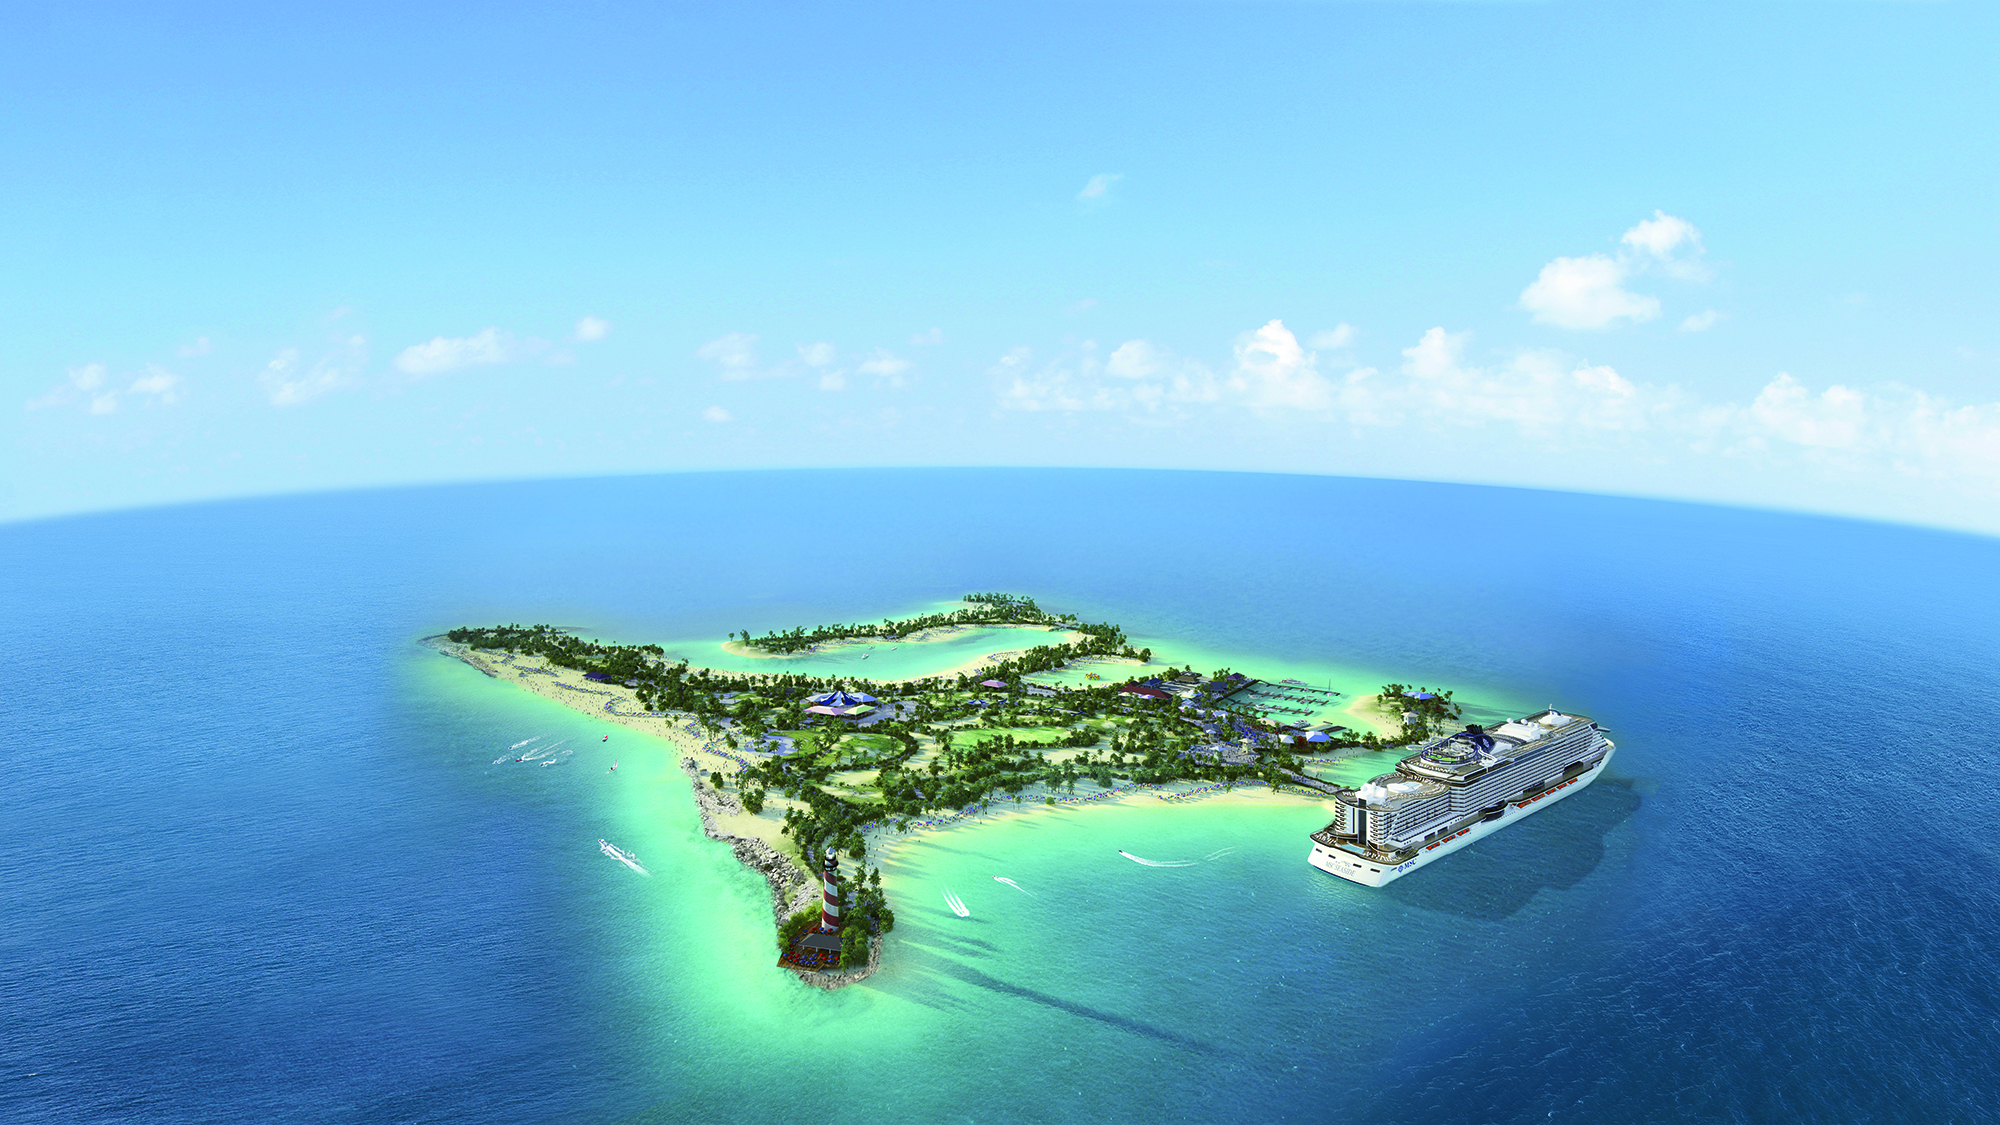 Private islands 2.0: More than a day at the beach